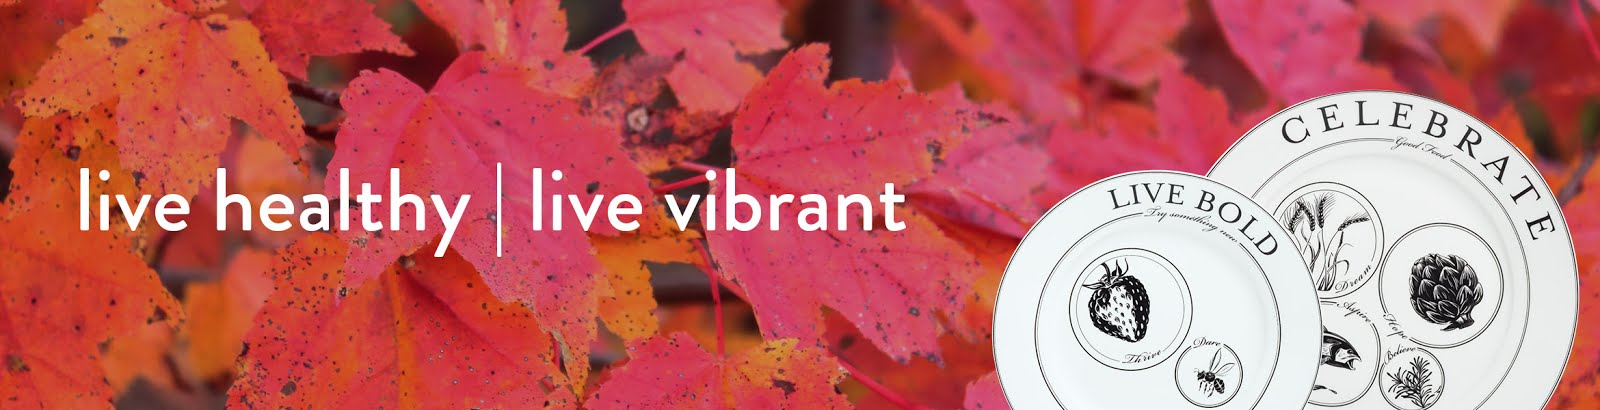 Live Healthy | Live Vibrant